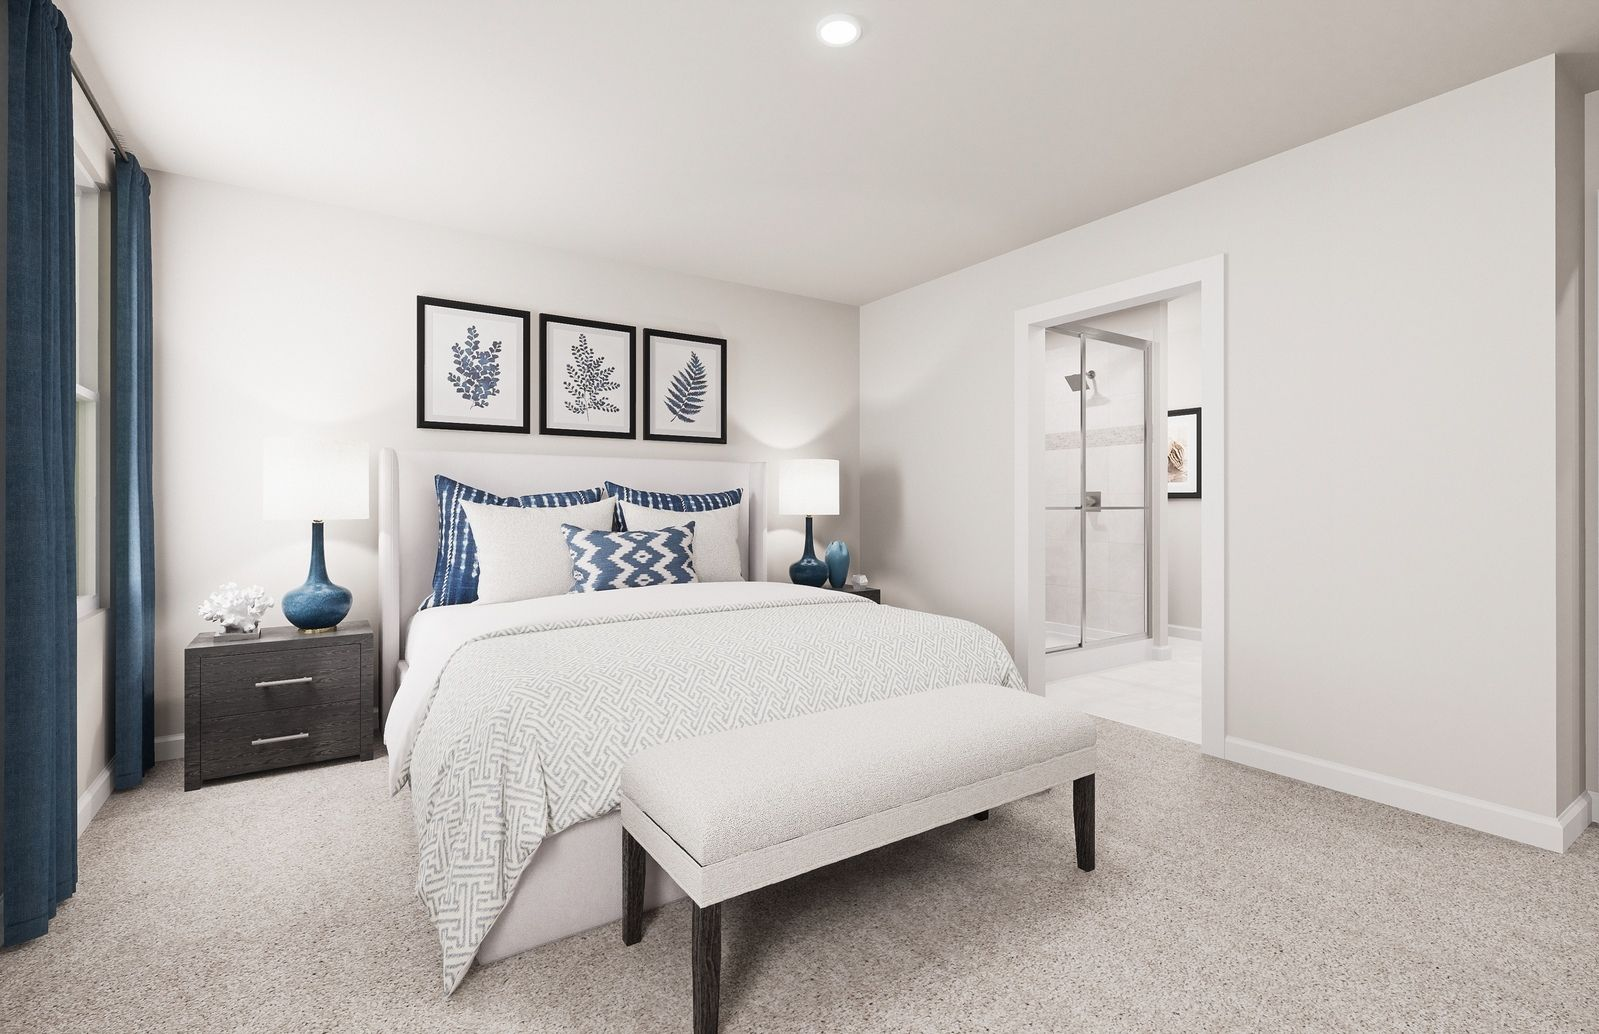 Bedroom featured in the Eden Cay By Ryan Homes in Cleveland, OH